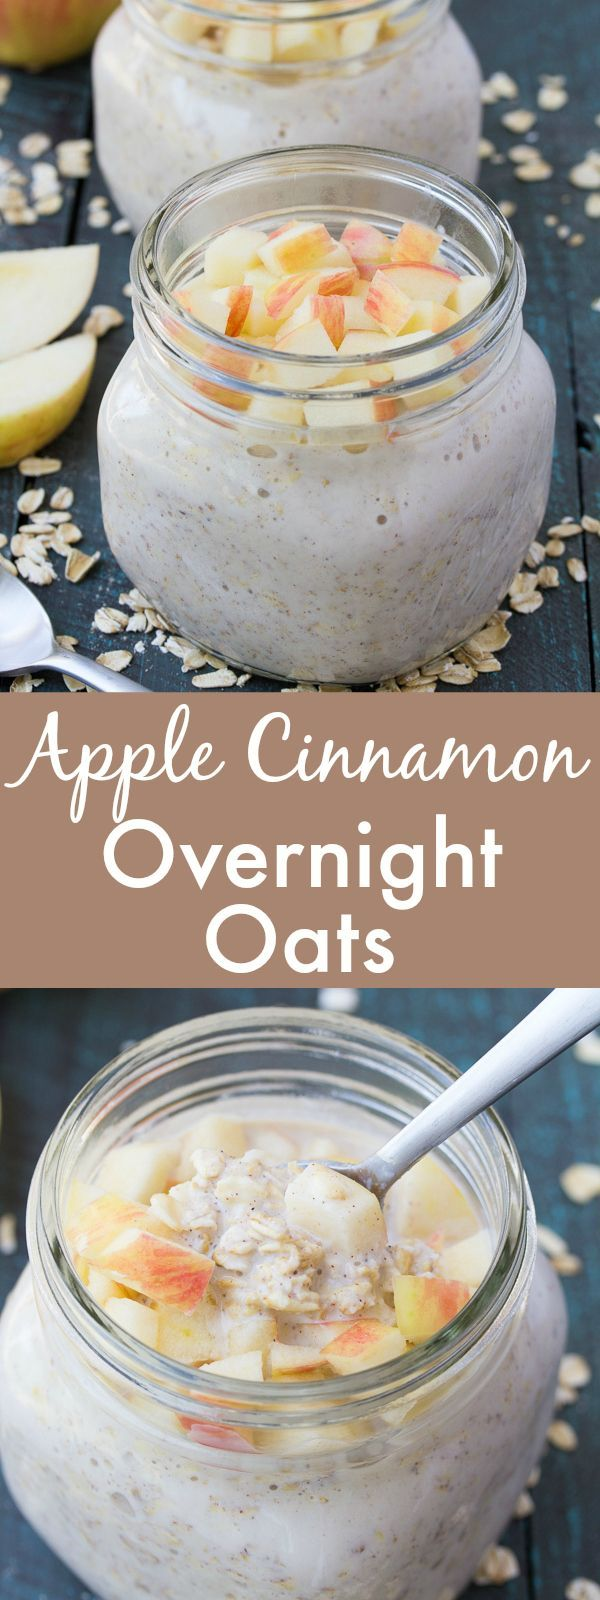 An easy recipe for Apple Cinnamon Overnight Oats. A healthy, make ahead breakfast for busy mornings! | http://www.kristineskitchenblog.com /bobsredmill/ #sponsored